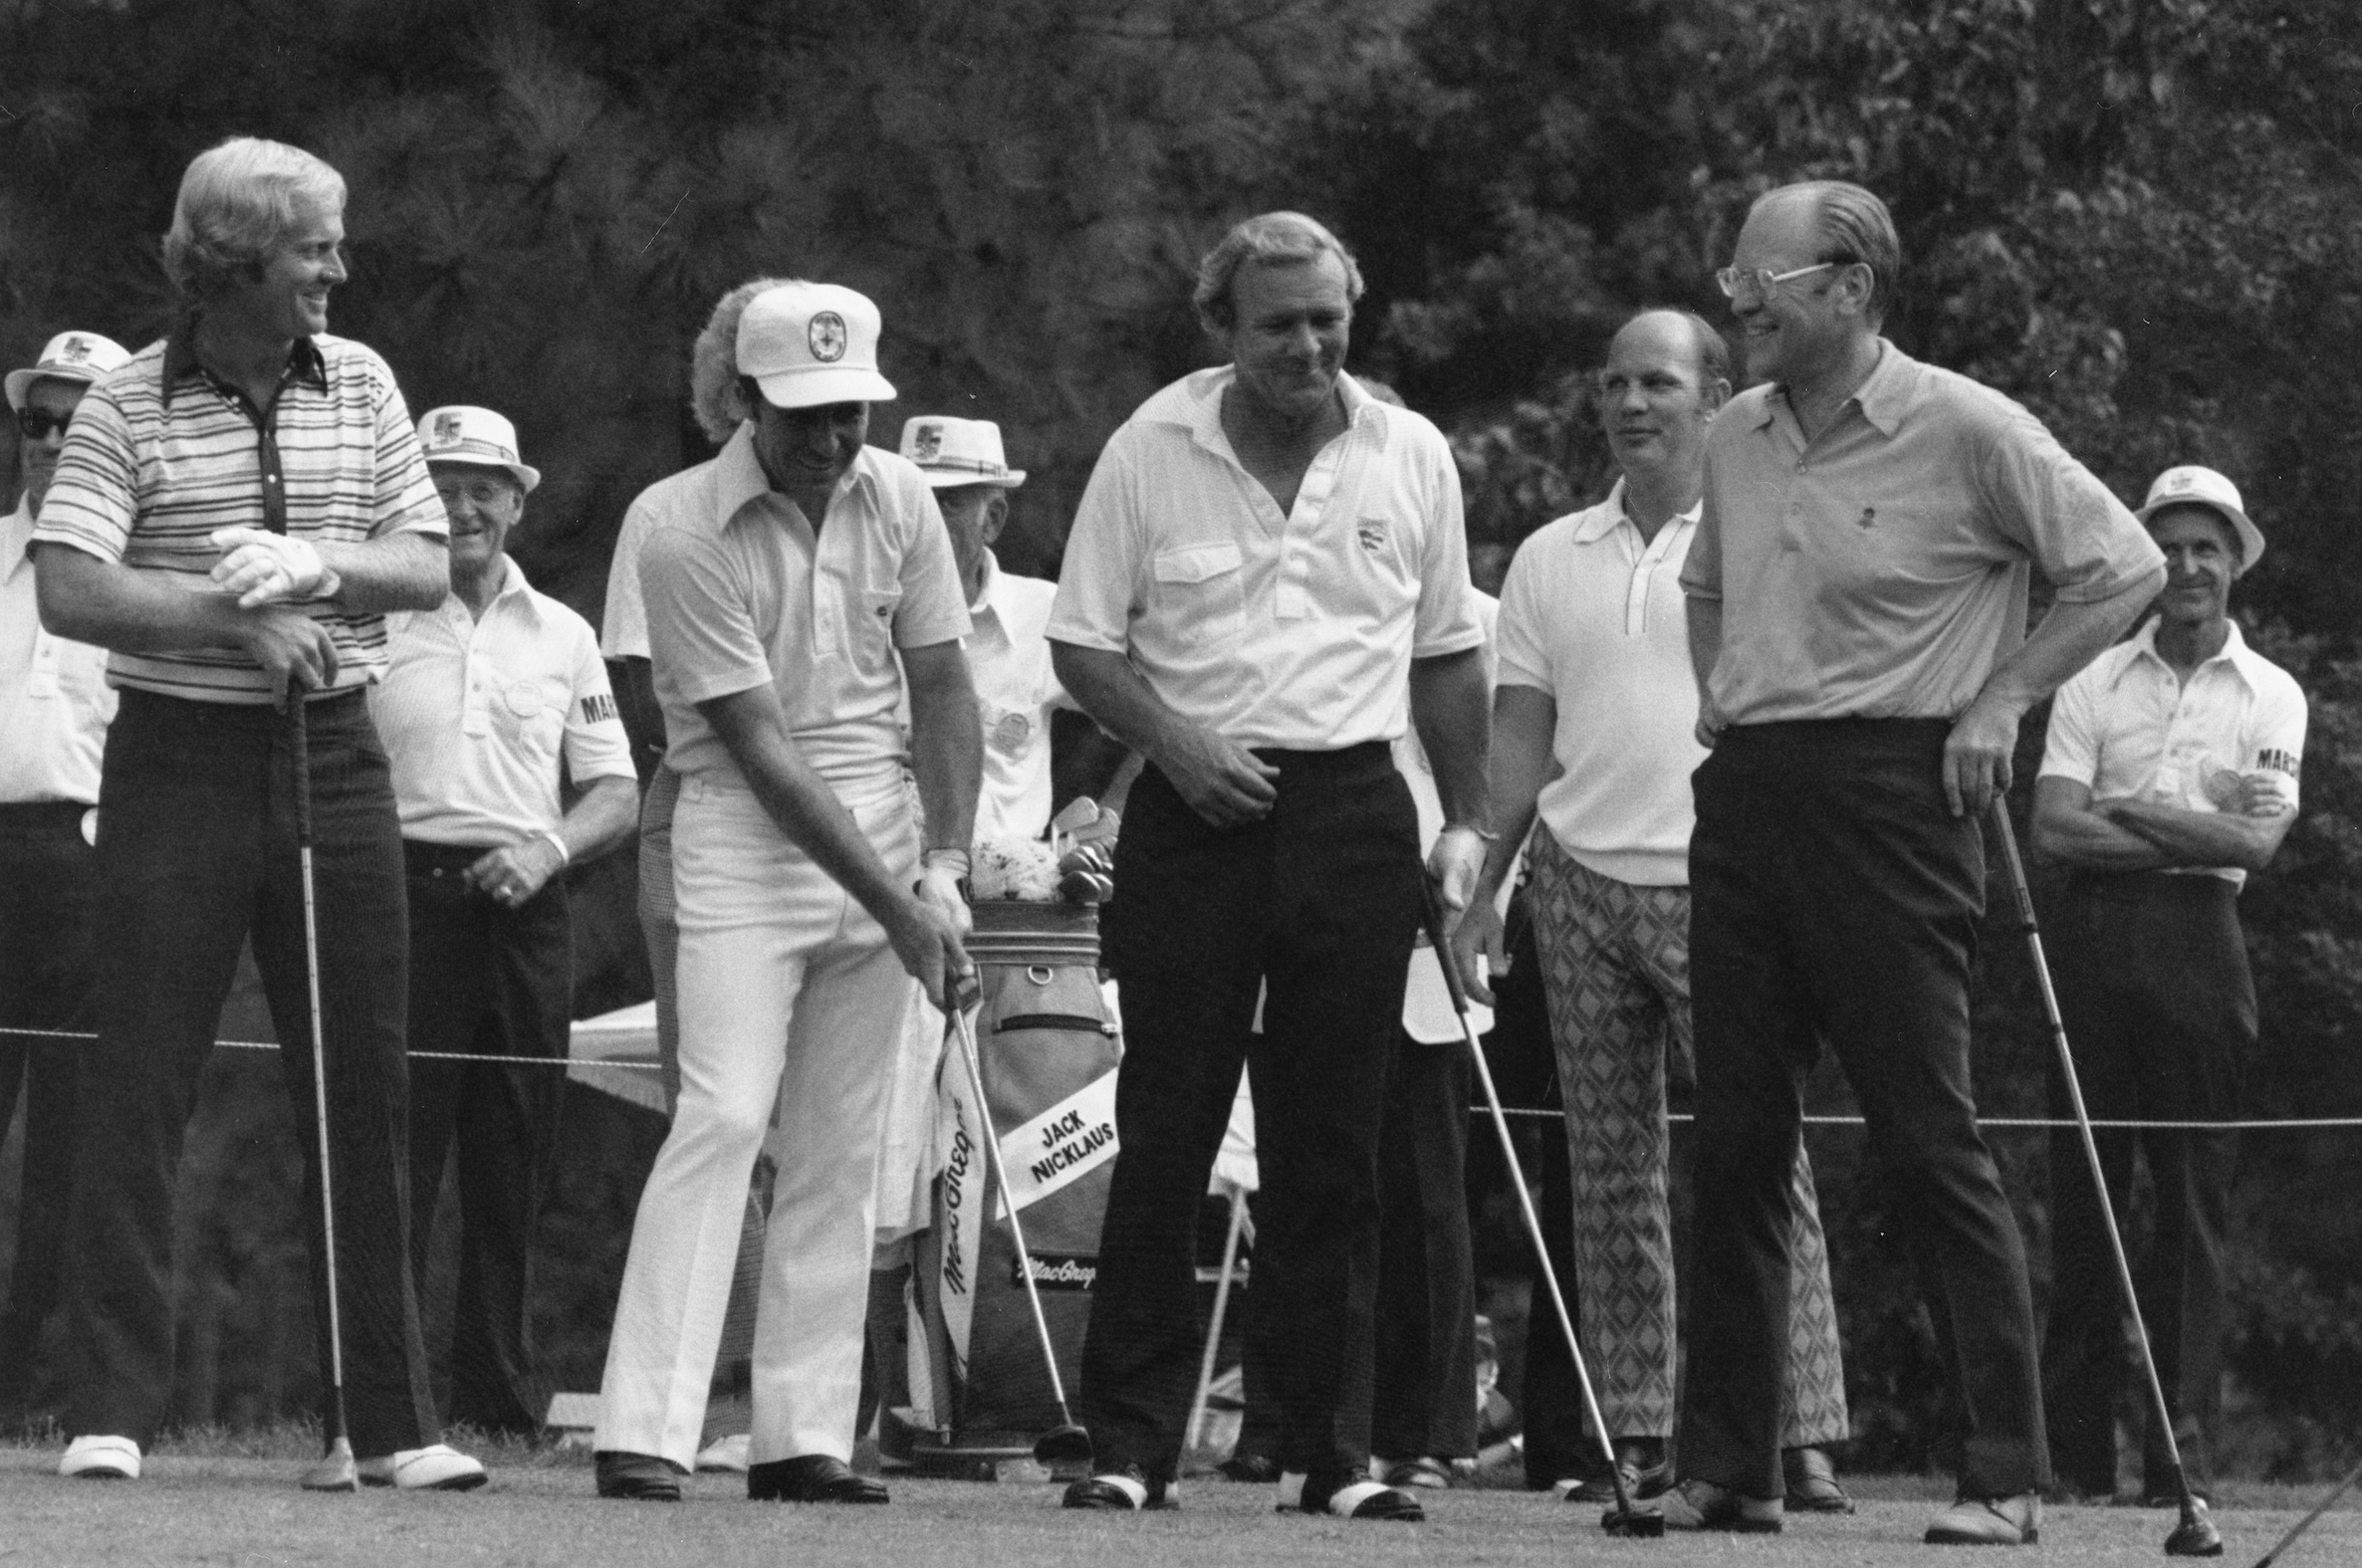 New President Gerald Ford put aside state business to fill out this celestial foursome at the opening ceremonies for the World Golf Hall of Fame.